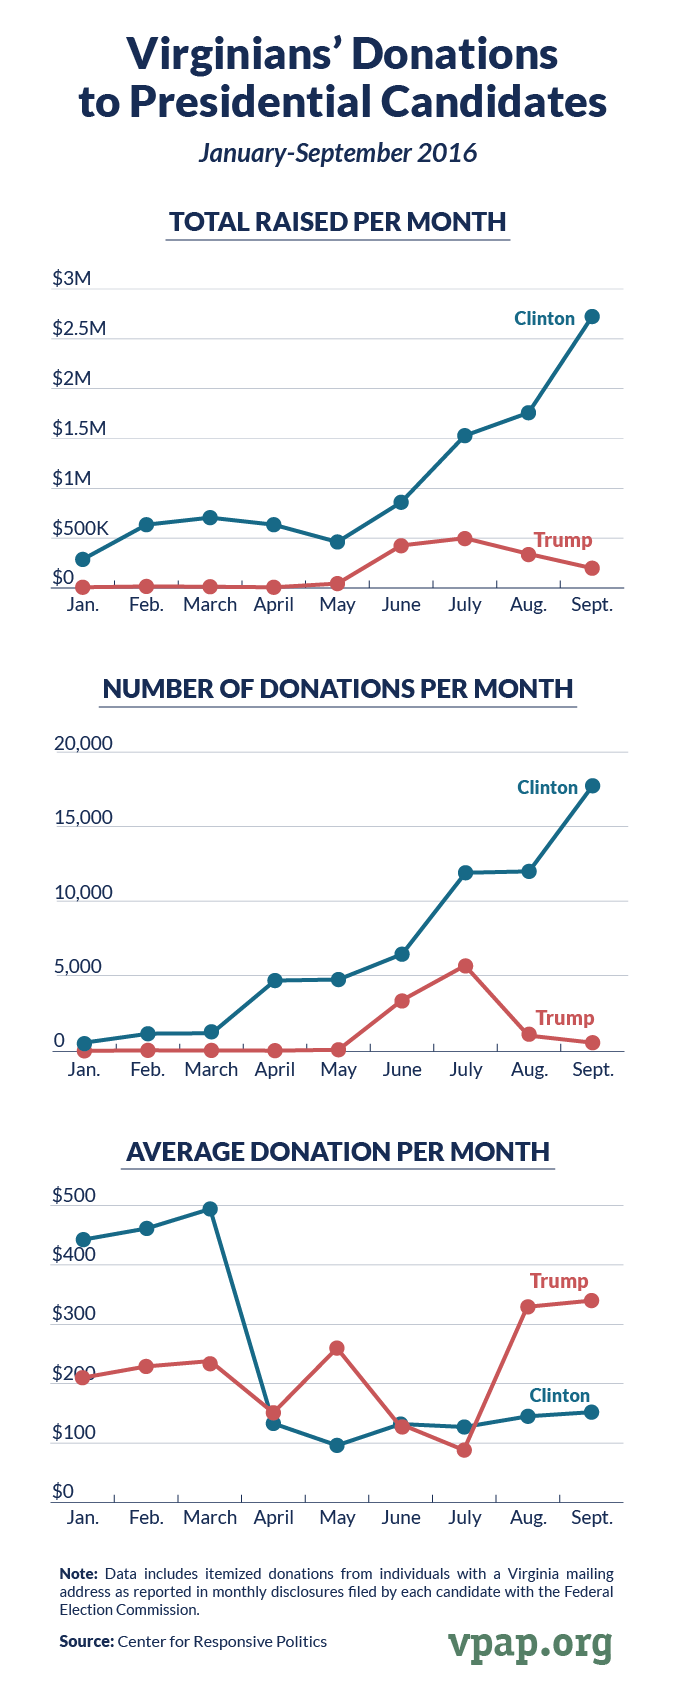 Virginians' Donations to Presidential Candidates, January-September